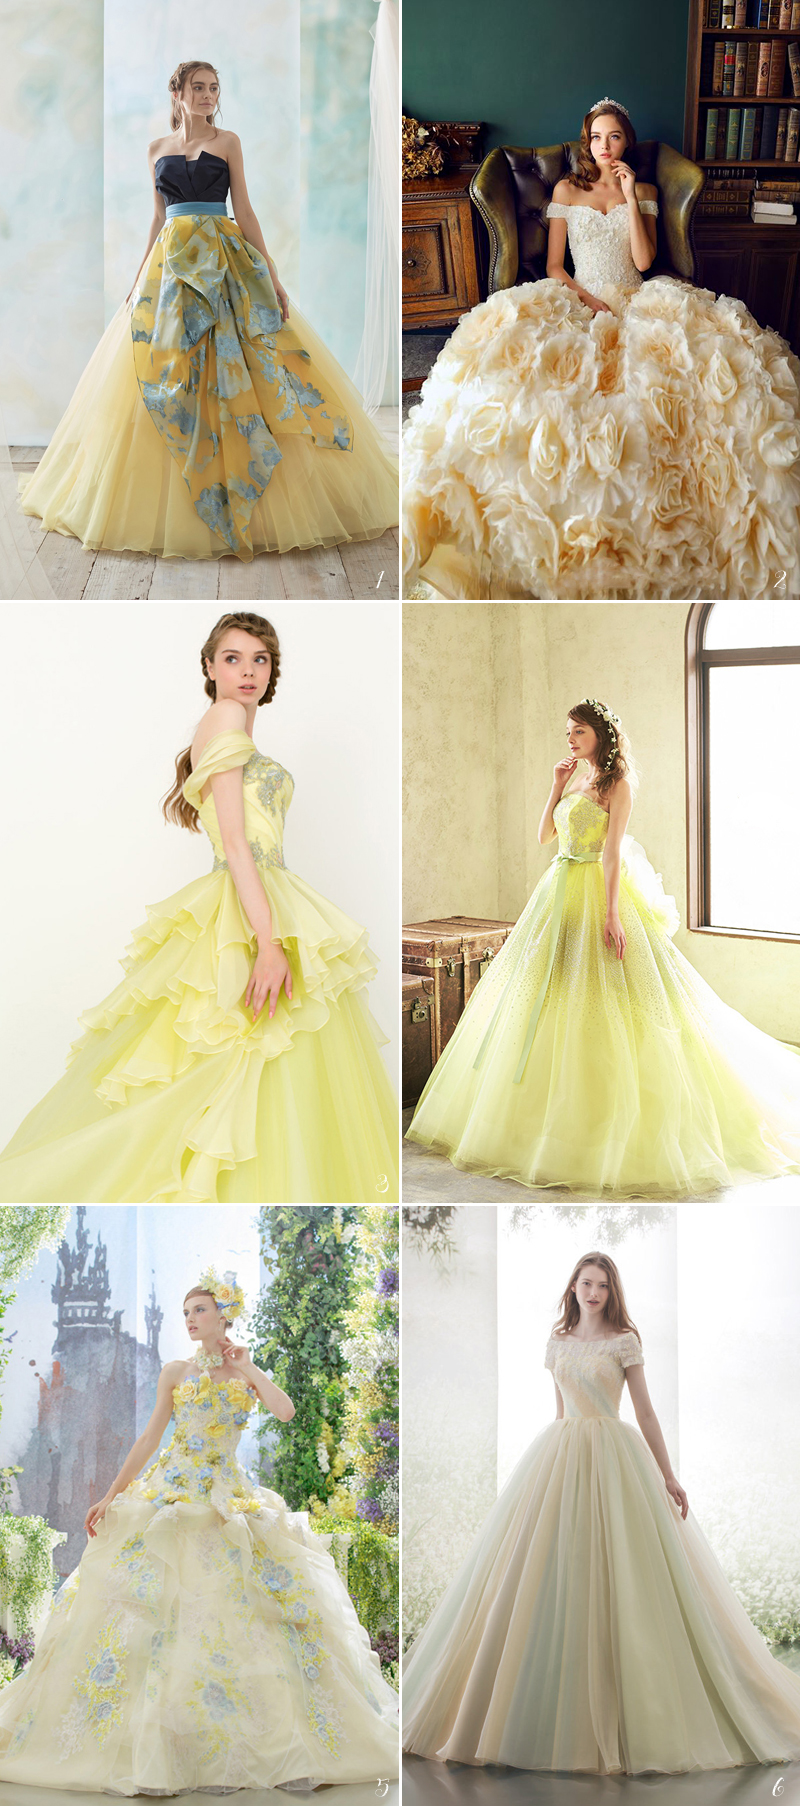 Fairy Tale Wedding Dresses For The Disney Princess Bride